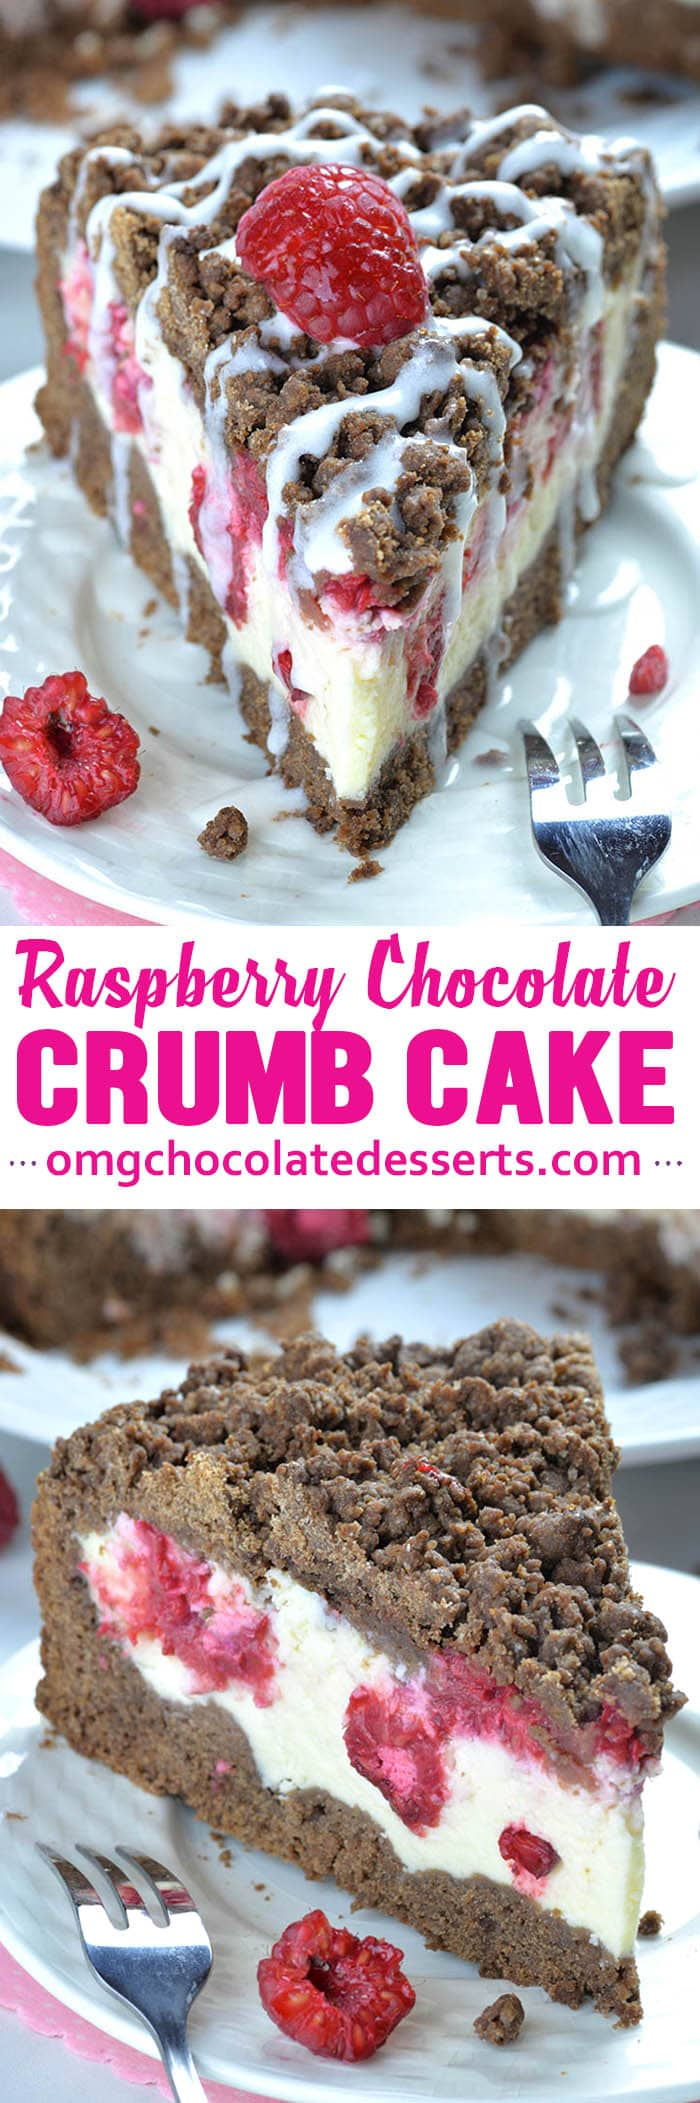 Chocolate Raspberry Cheesecake Crumb Cake is delicious dessert for chocolate lovers.